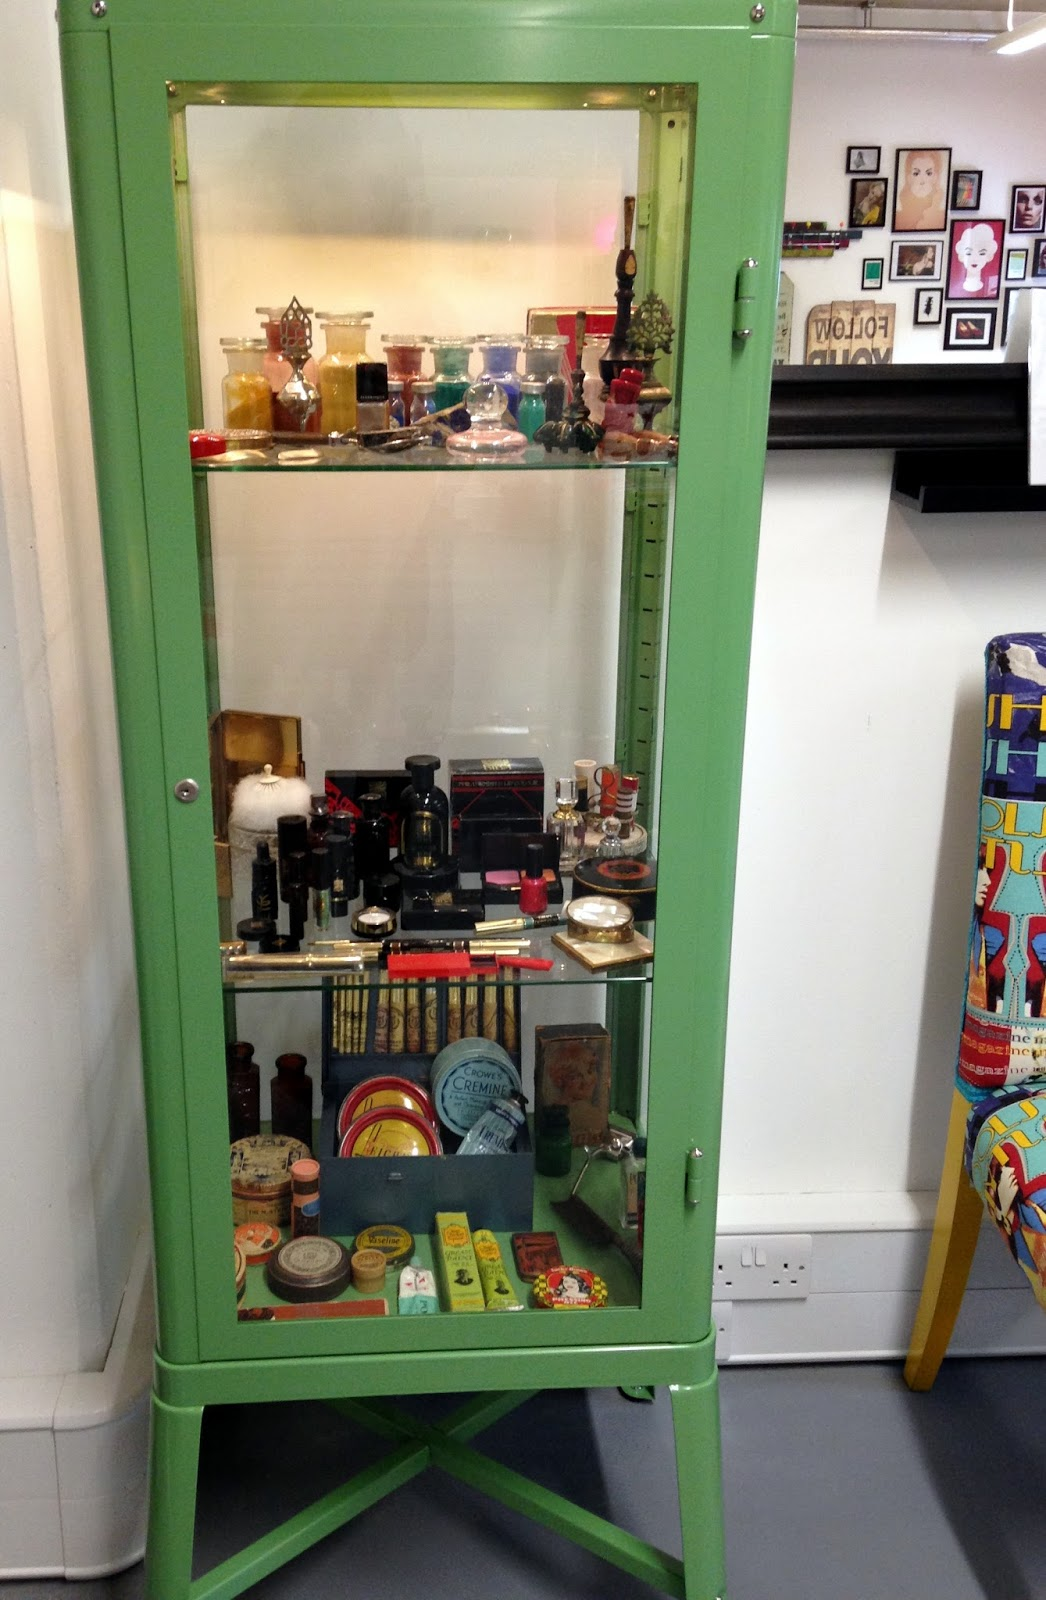 House of Glam Dolls Vintage Makeup cabinet